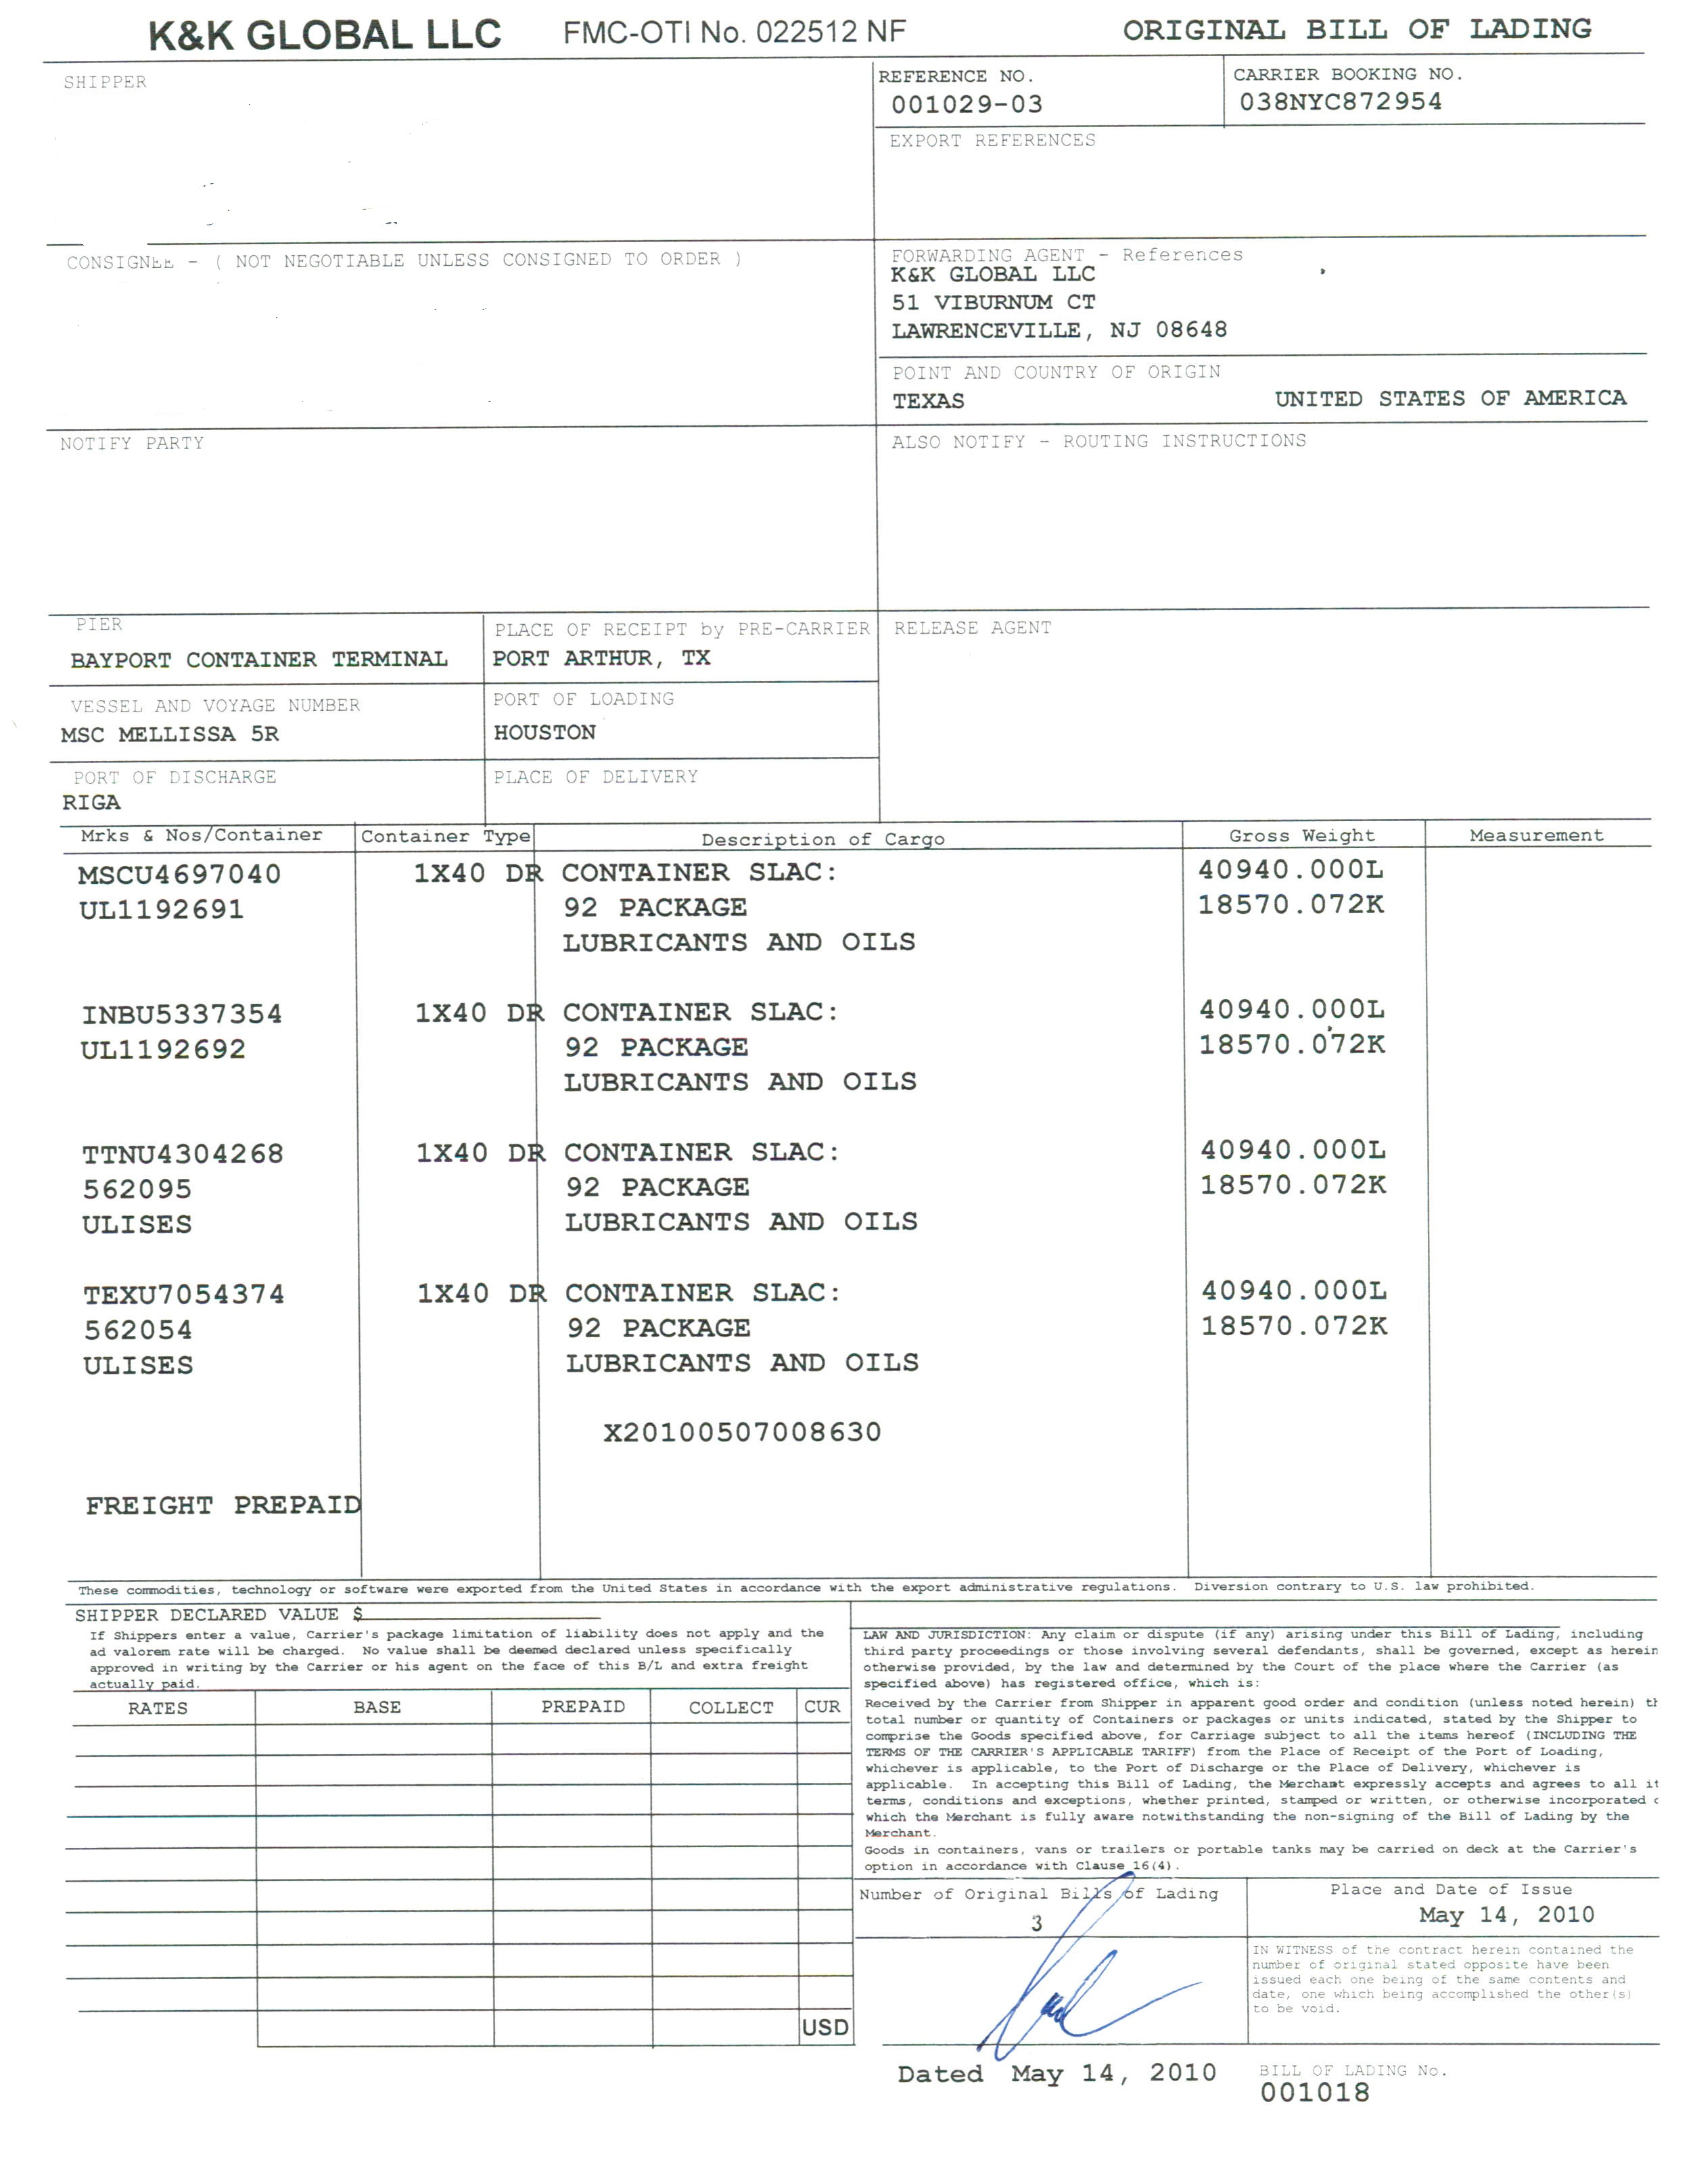 Lloyd's Form Bill Of Lading